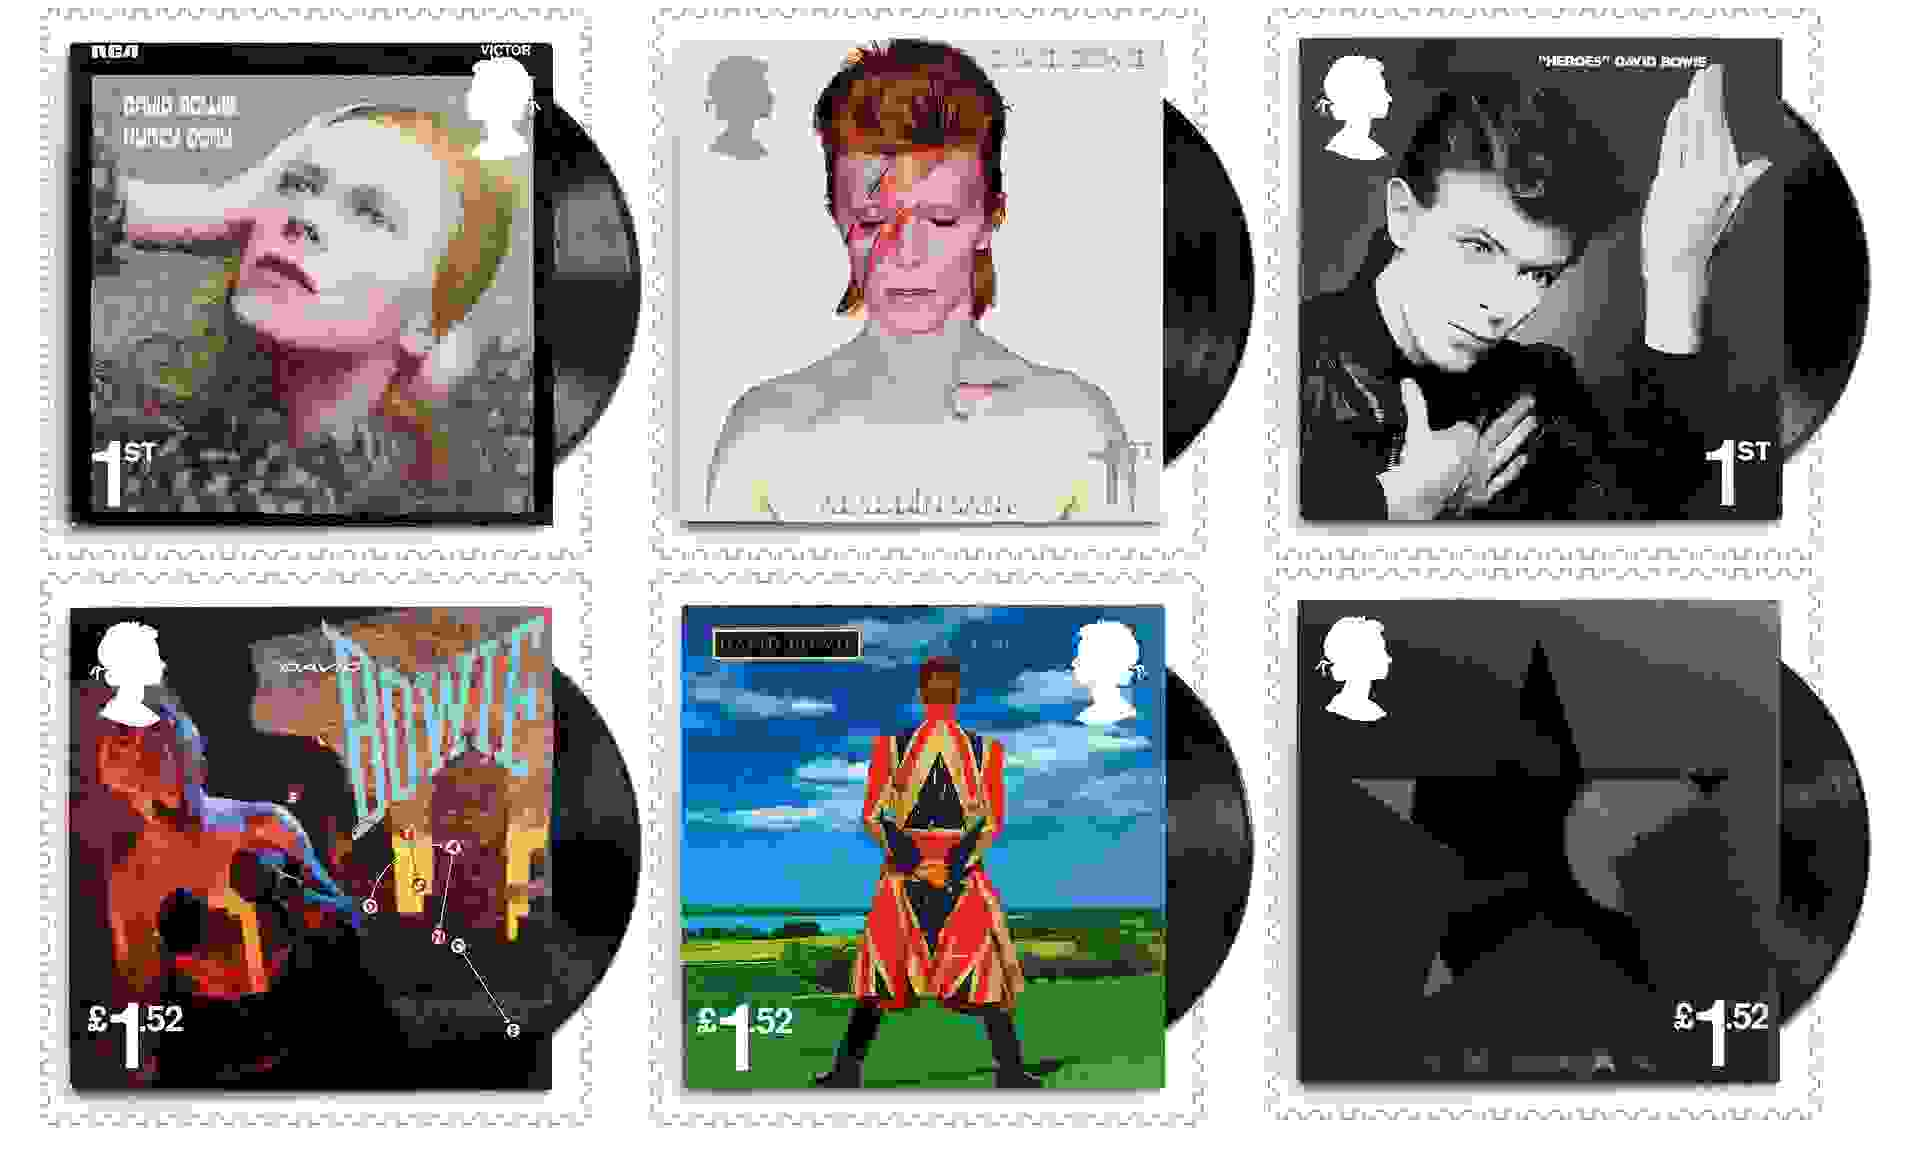 Stamp tribute to David Bowie